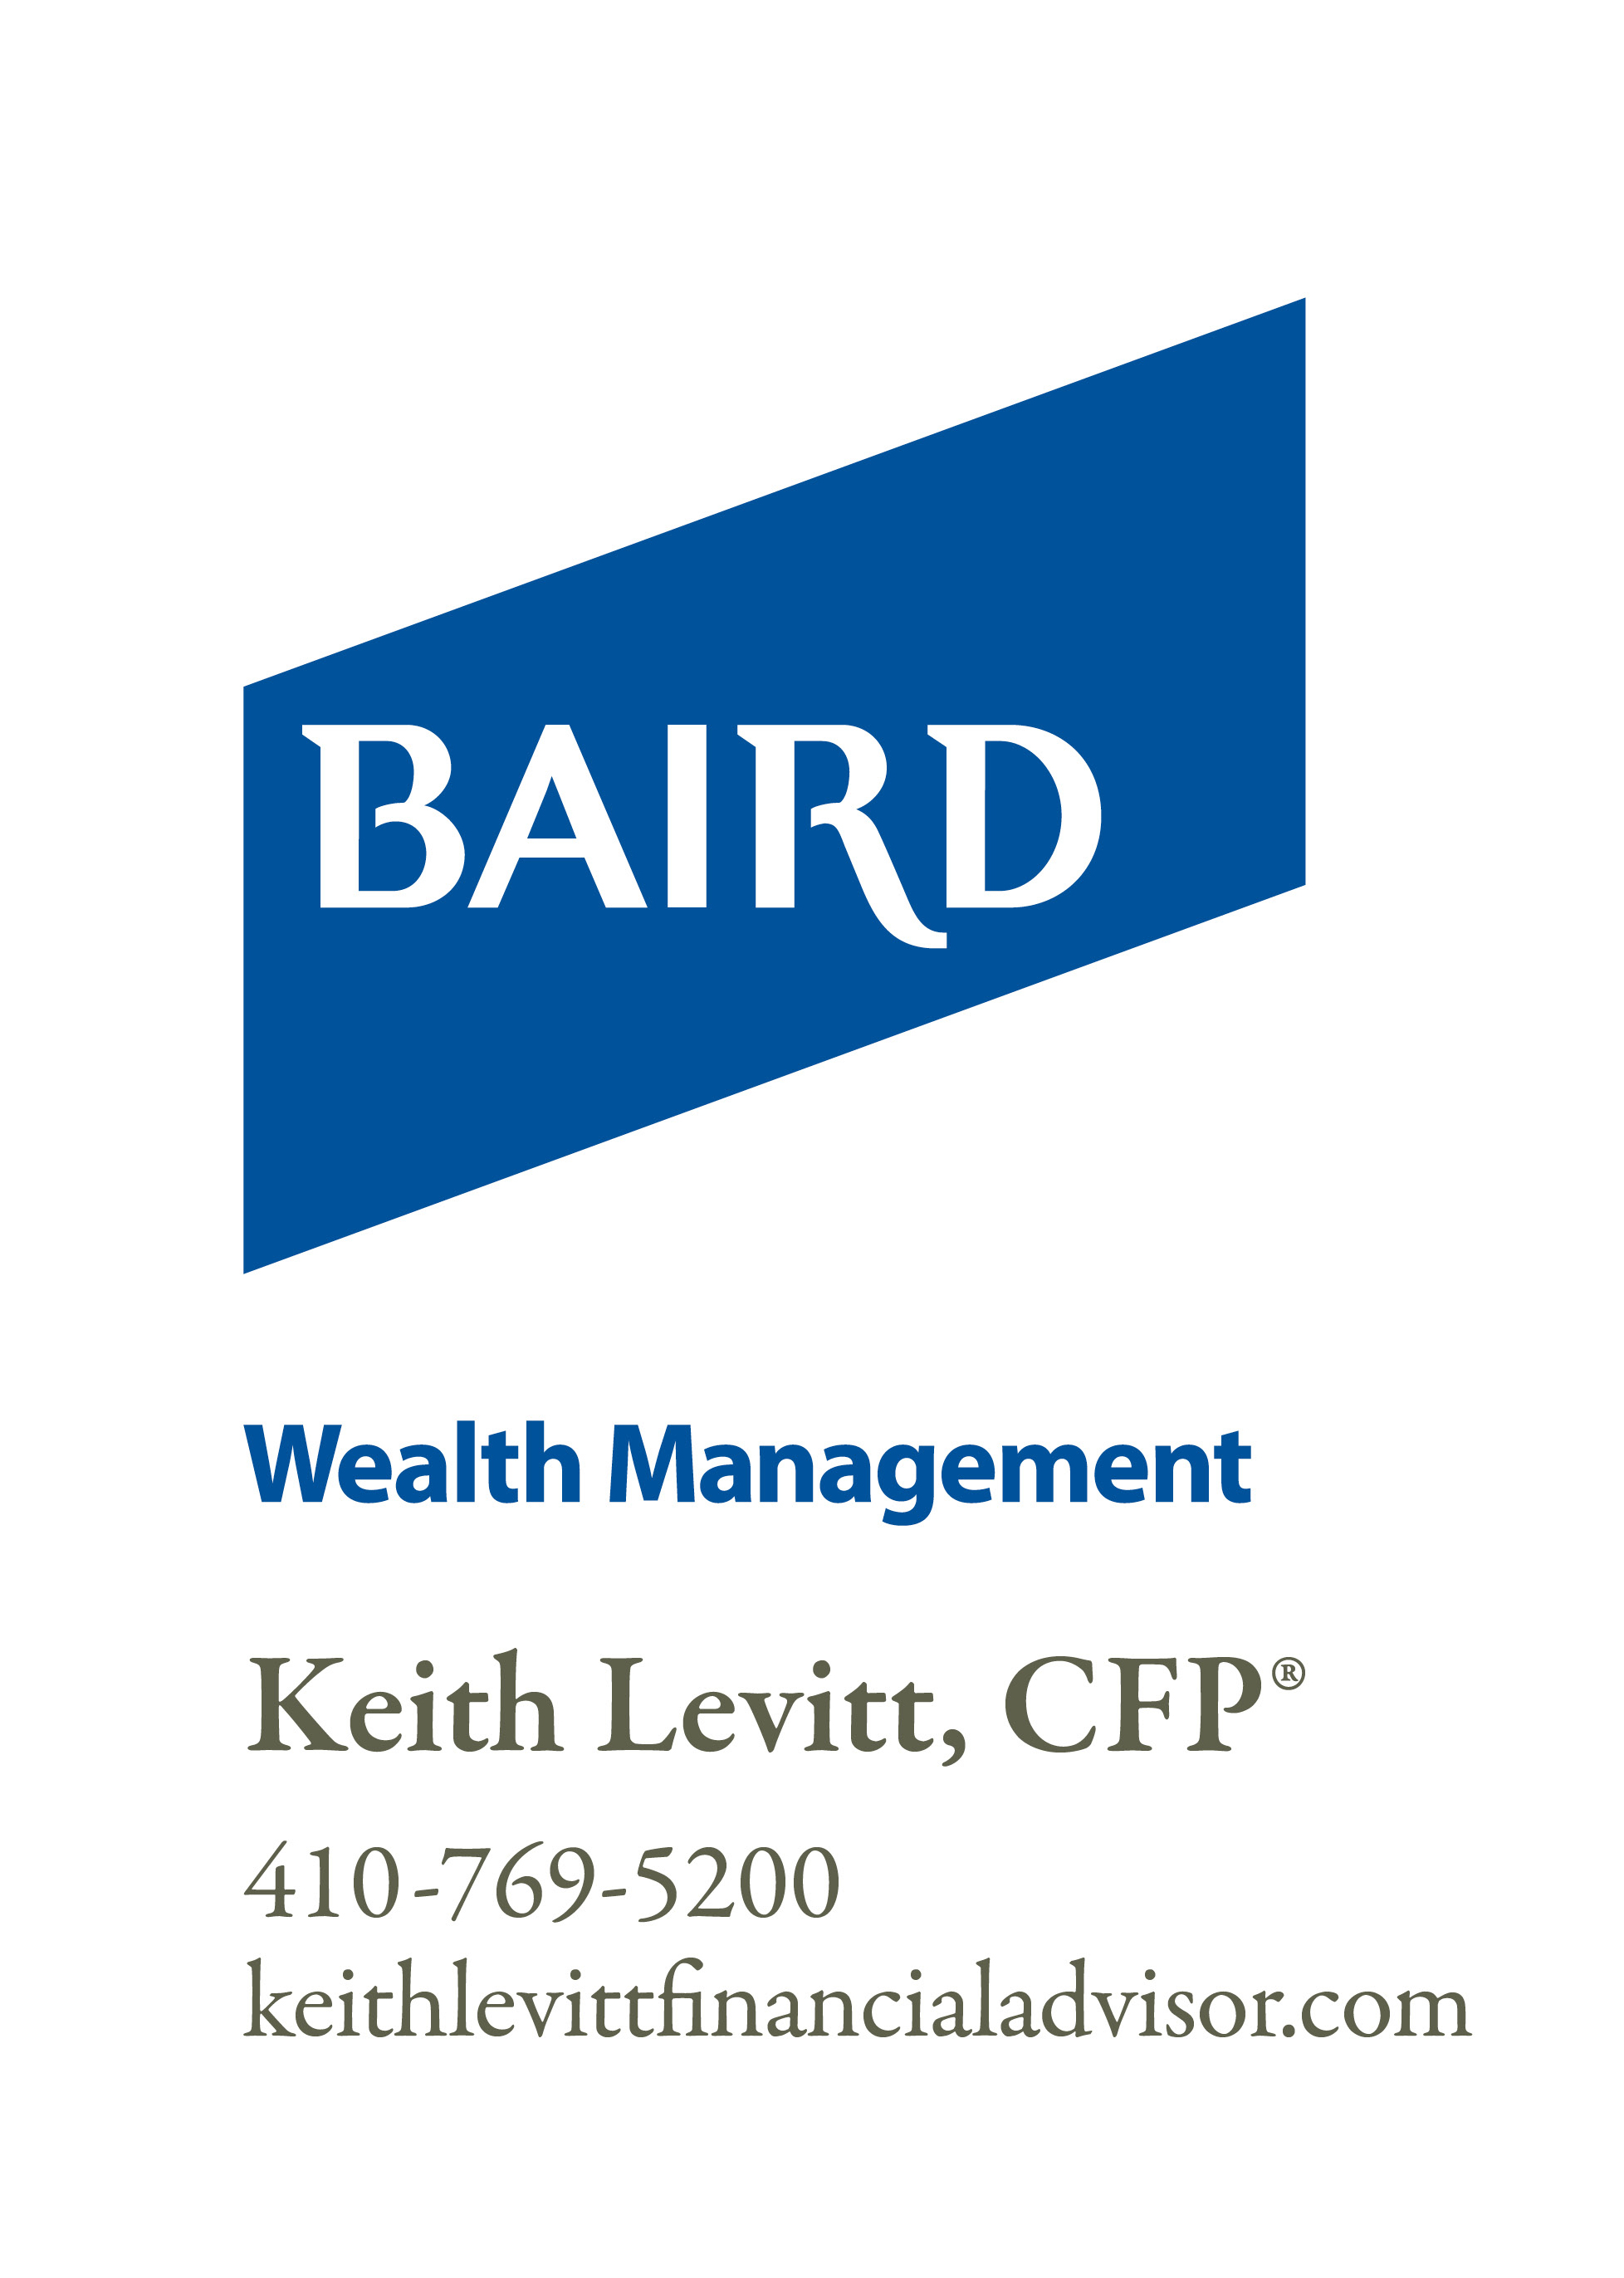 08 Baird Financial Advisor